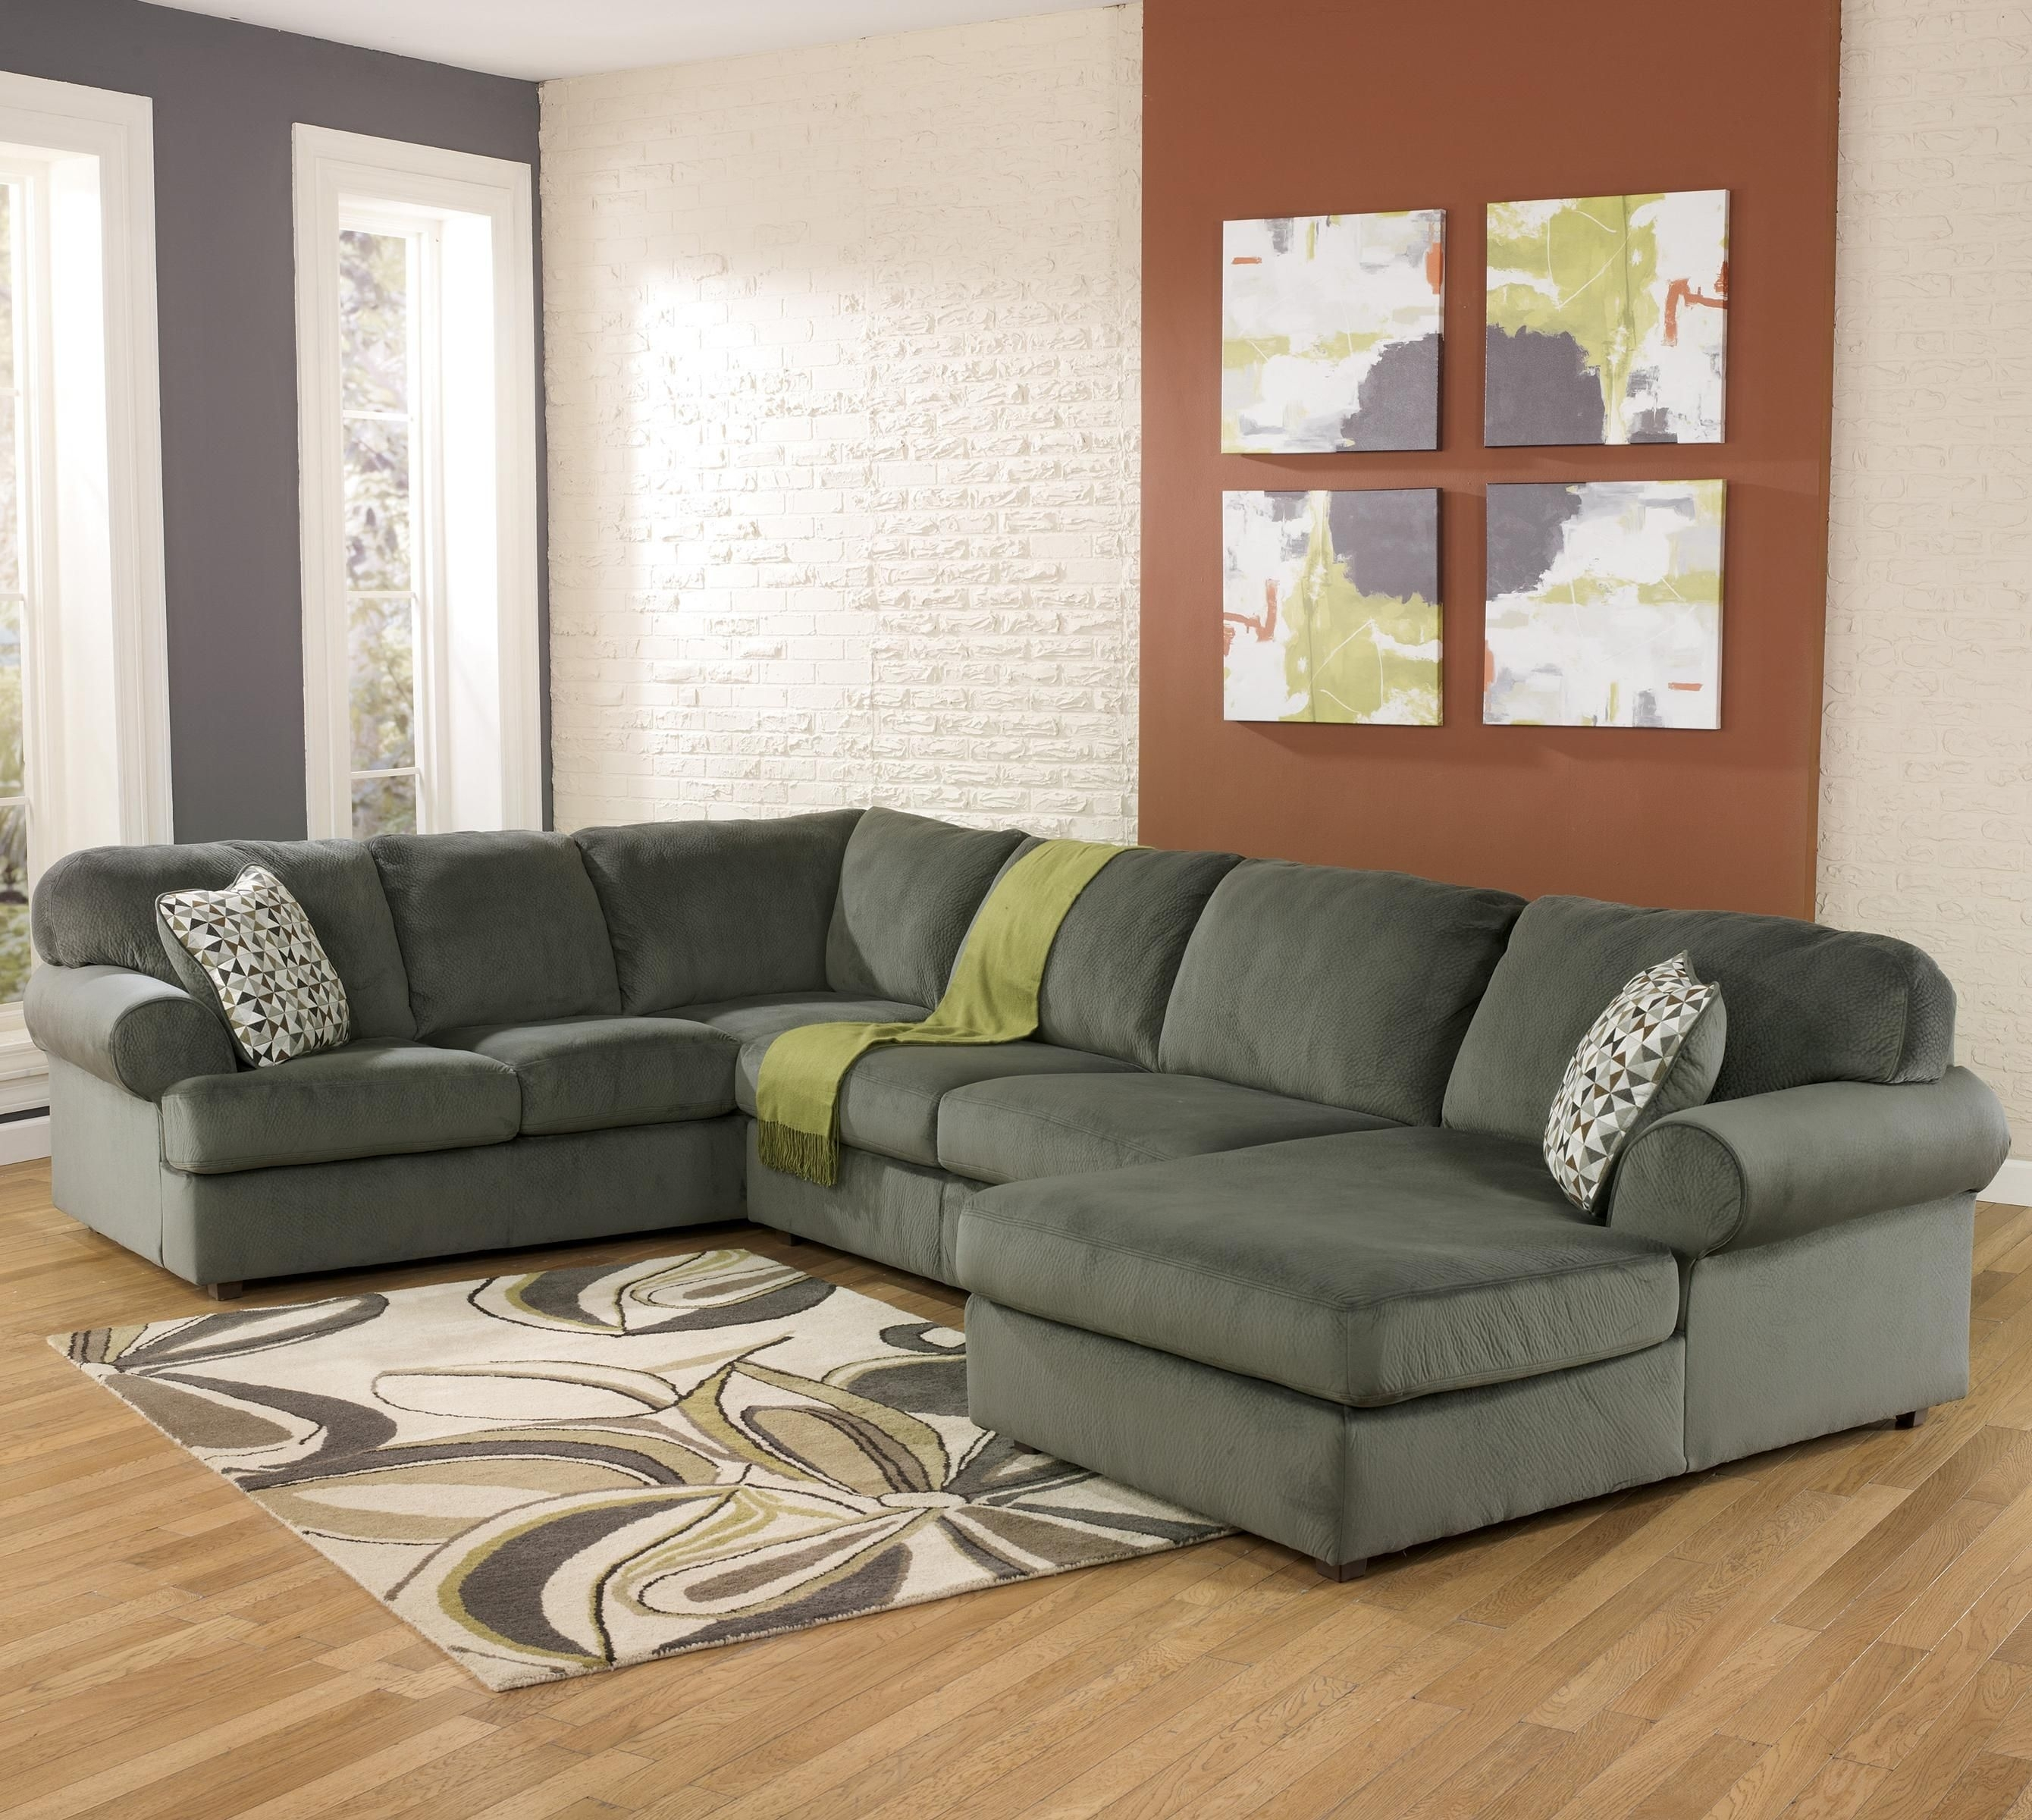 Jessa Place – Pewter Casual Sectional Sofa With Right Chaise Within Collins Sofa Sectionals With Reversible Chaise (View 15 of 30)